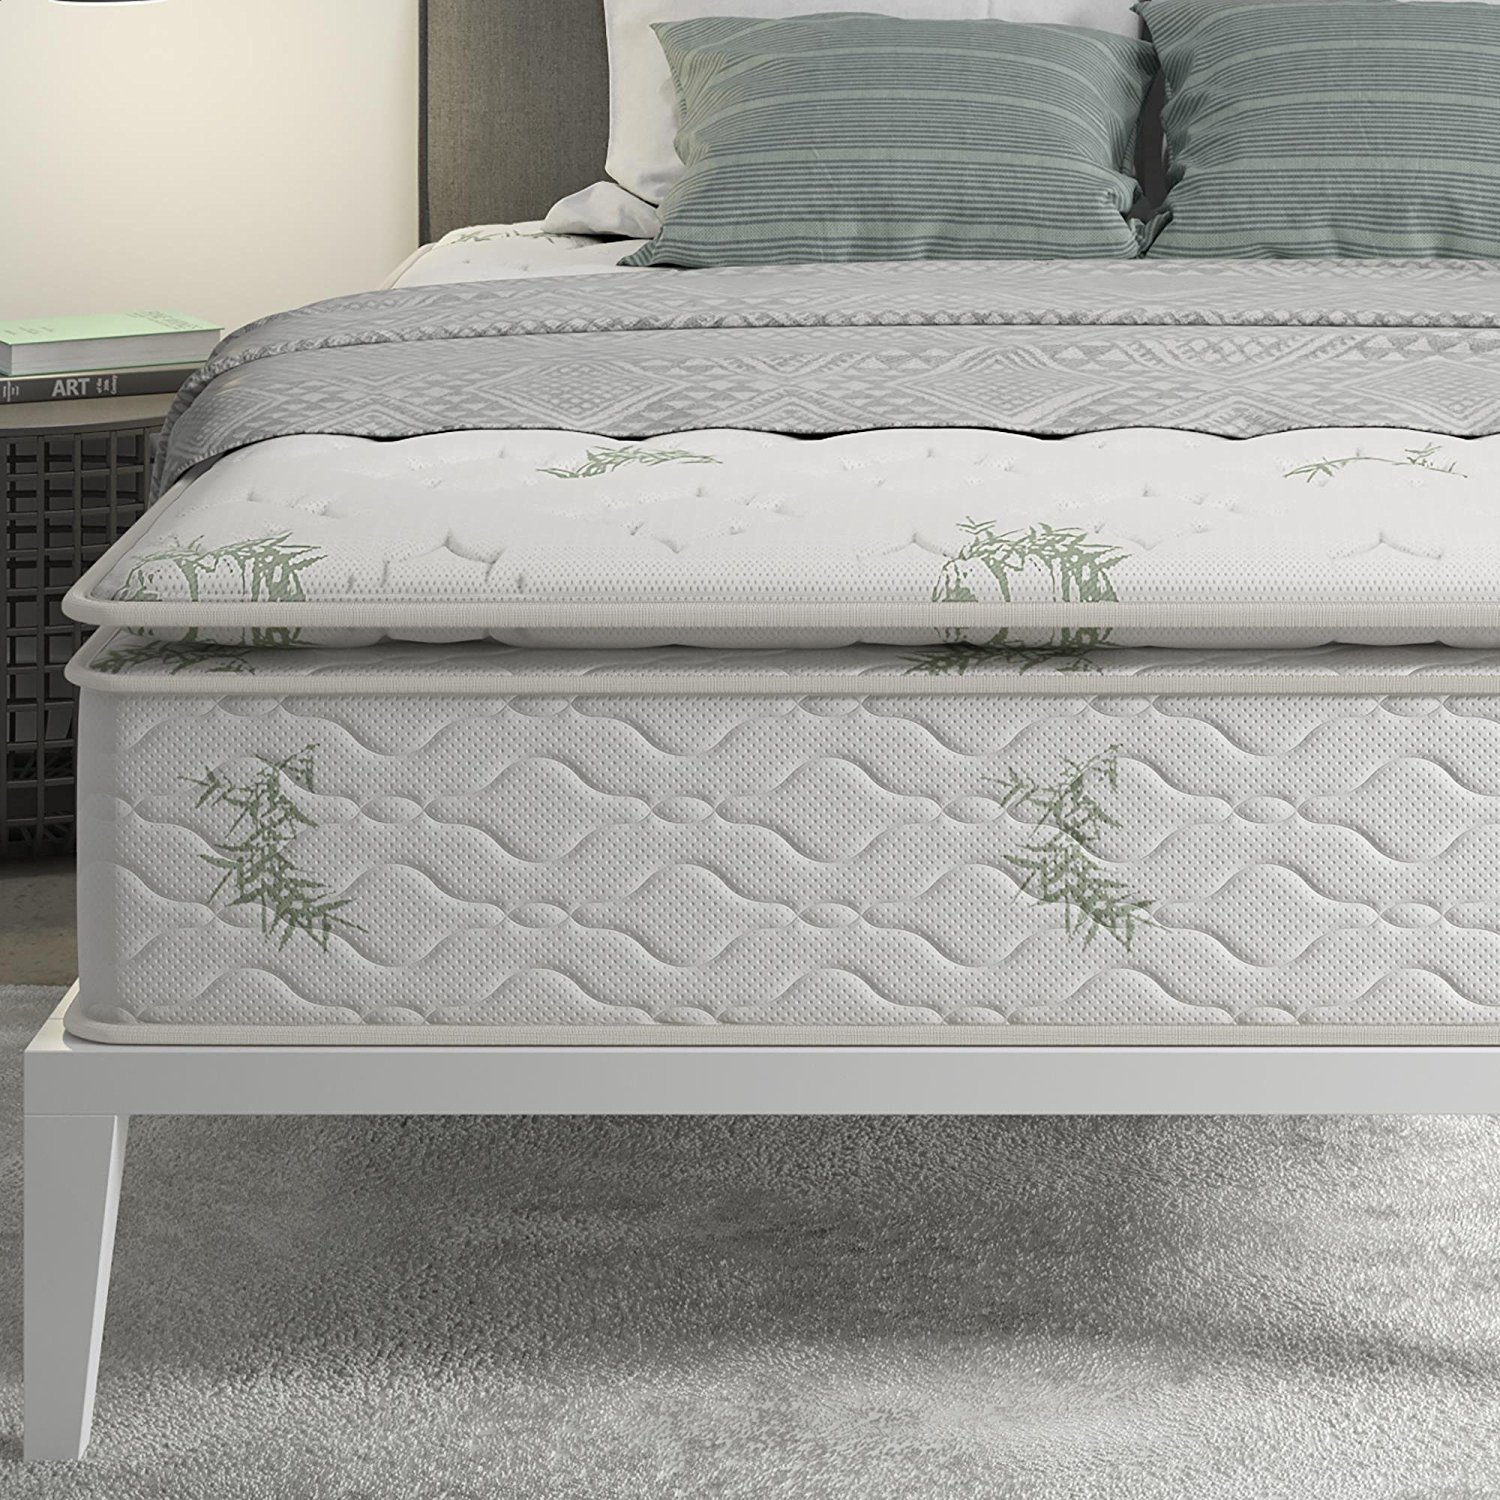 Signature Sleep Bamboo Mattress Review by www.snoremagazine.com